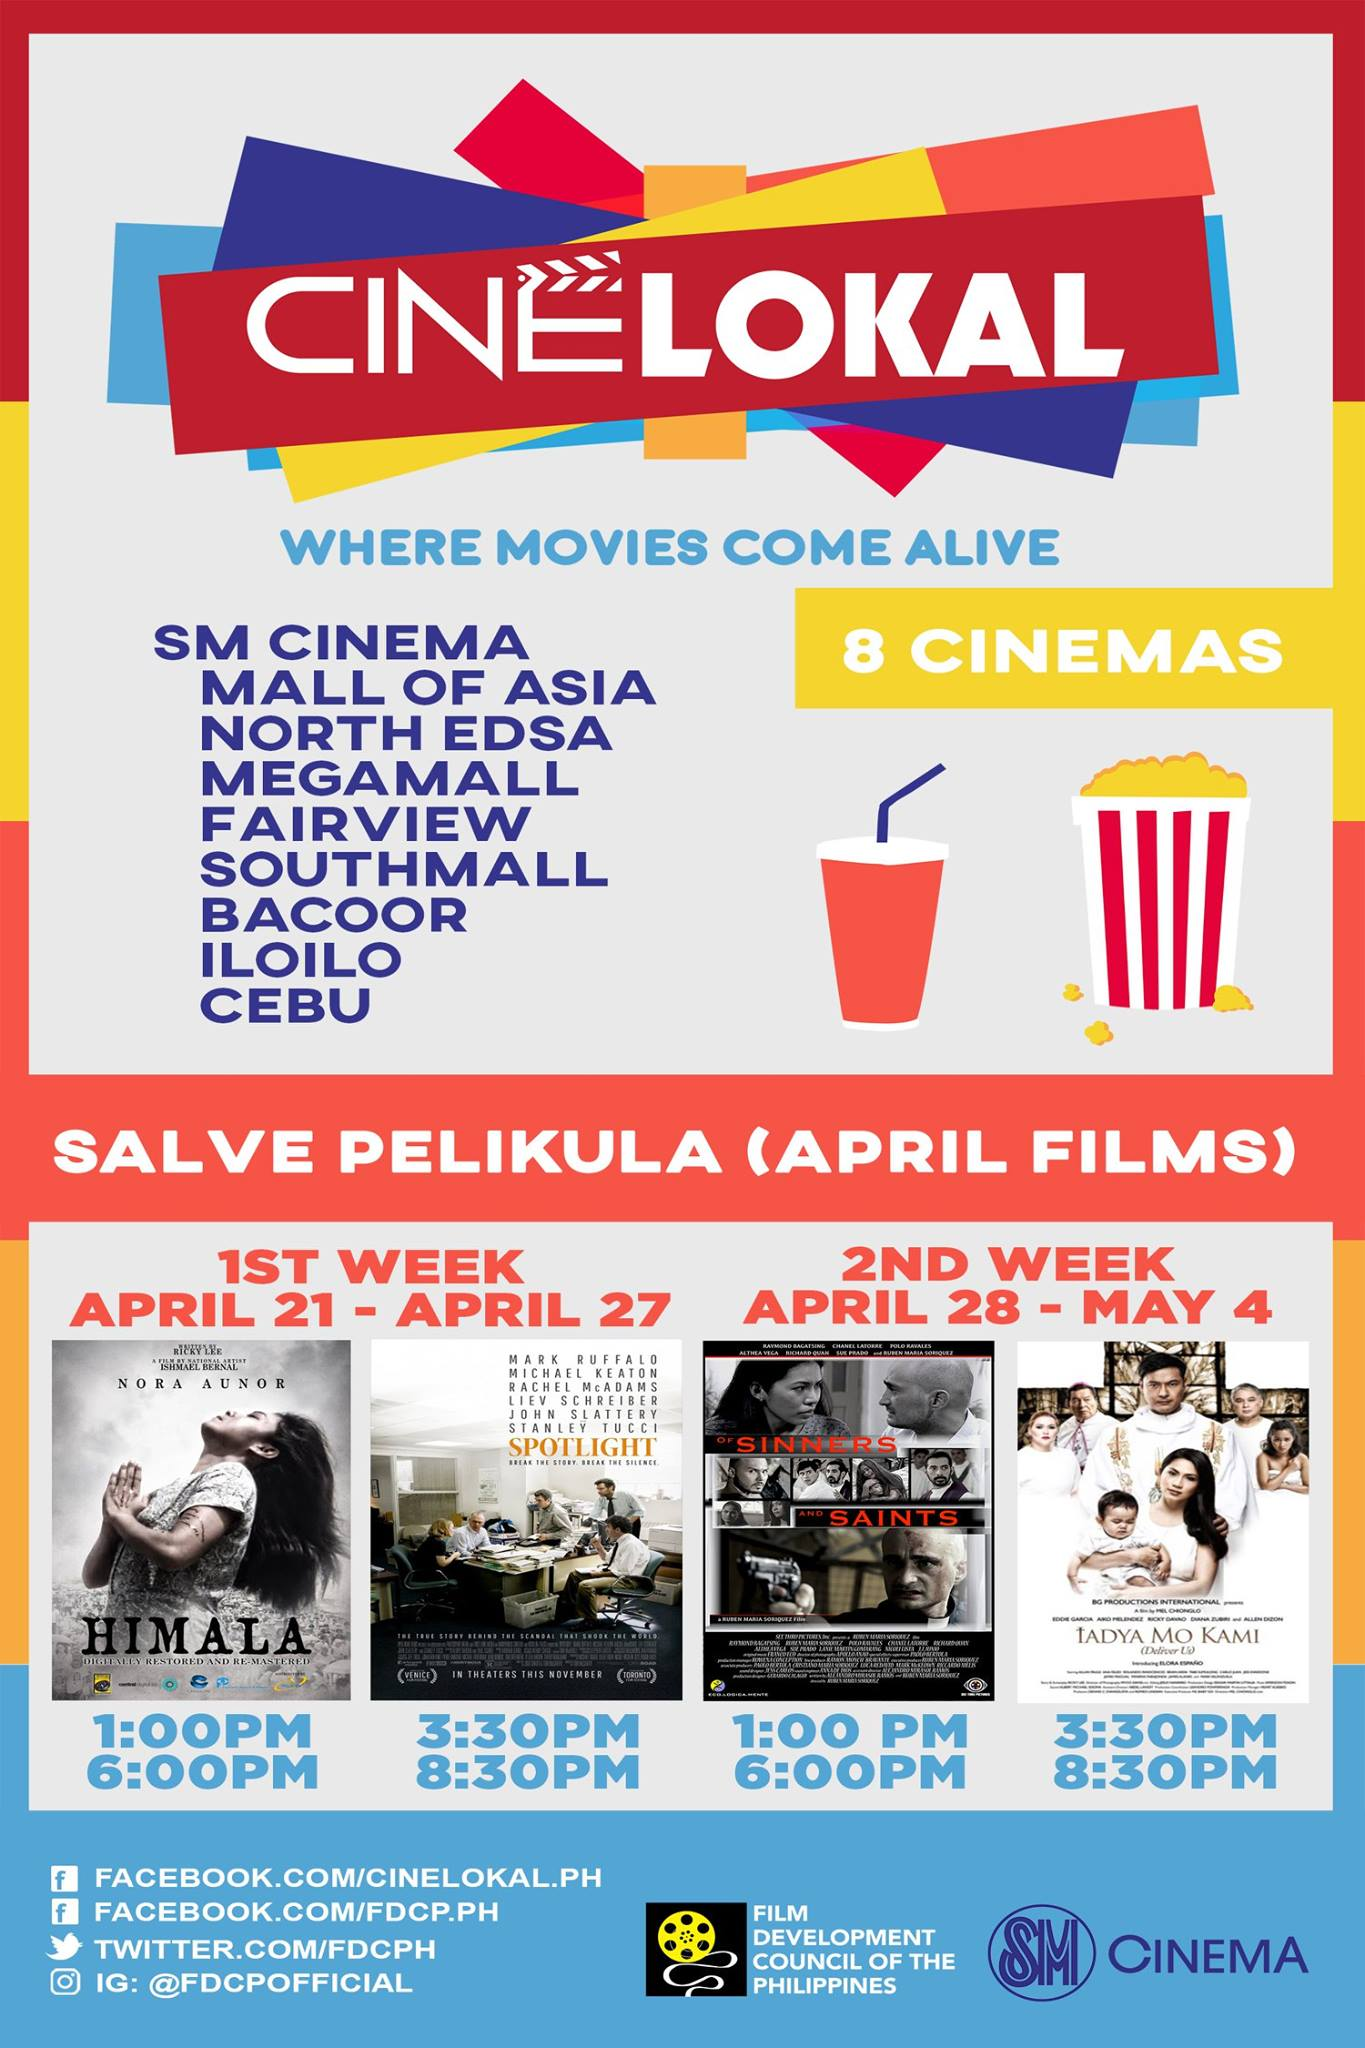 "Cine Lokal Page Liked · April 17 · Edited · Cine Lokal is a program of which they will screen and showcase independent, award-winning films and FDCP programs to selected SM Cinema branches across the country starting this April 21, 2017. This April, CineLokal will launch ""Salve Pelikula"" film series---- a themed programming on faith-based films which will be screened in lieu of Lenten Season this April 21, 2017. CineLokal will feature the following films this April: Spotlight (Best Picture 2015 Oscars), Himala (Ishmael Bernal), Of Sinners and Saints (Ruben Soriquez), and Iadya Mo Kami (Mel Chionglo). We will also be having a grand launch this Wednesday, April 19, 2017 where we will officially open CineLokal to the public. Let us support and make CineLokal known to everyone! Iangat natin ang pelikula ng ating bansa! #CineLokal #CineLokal2017 #SalvePelikula"